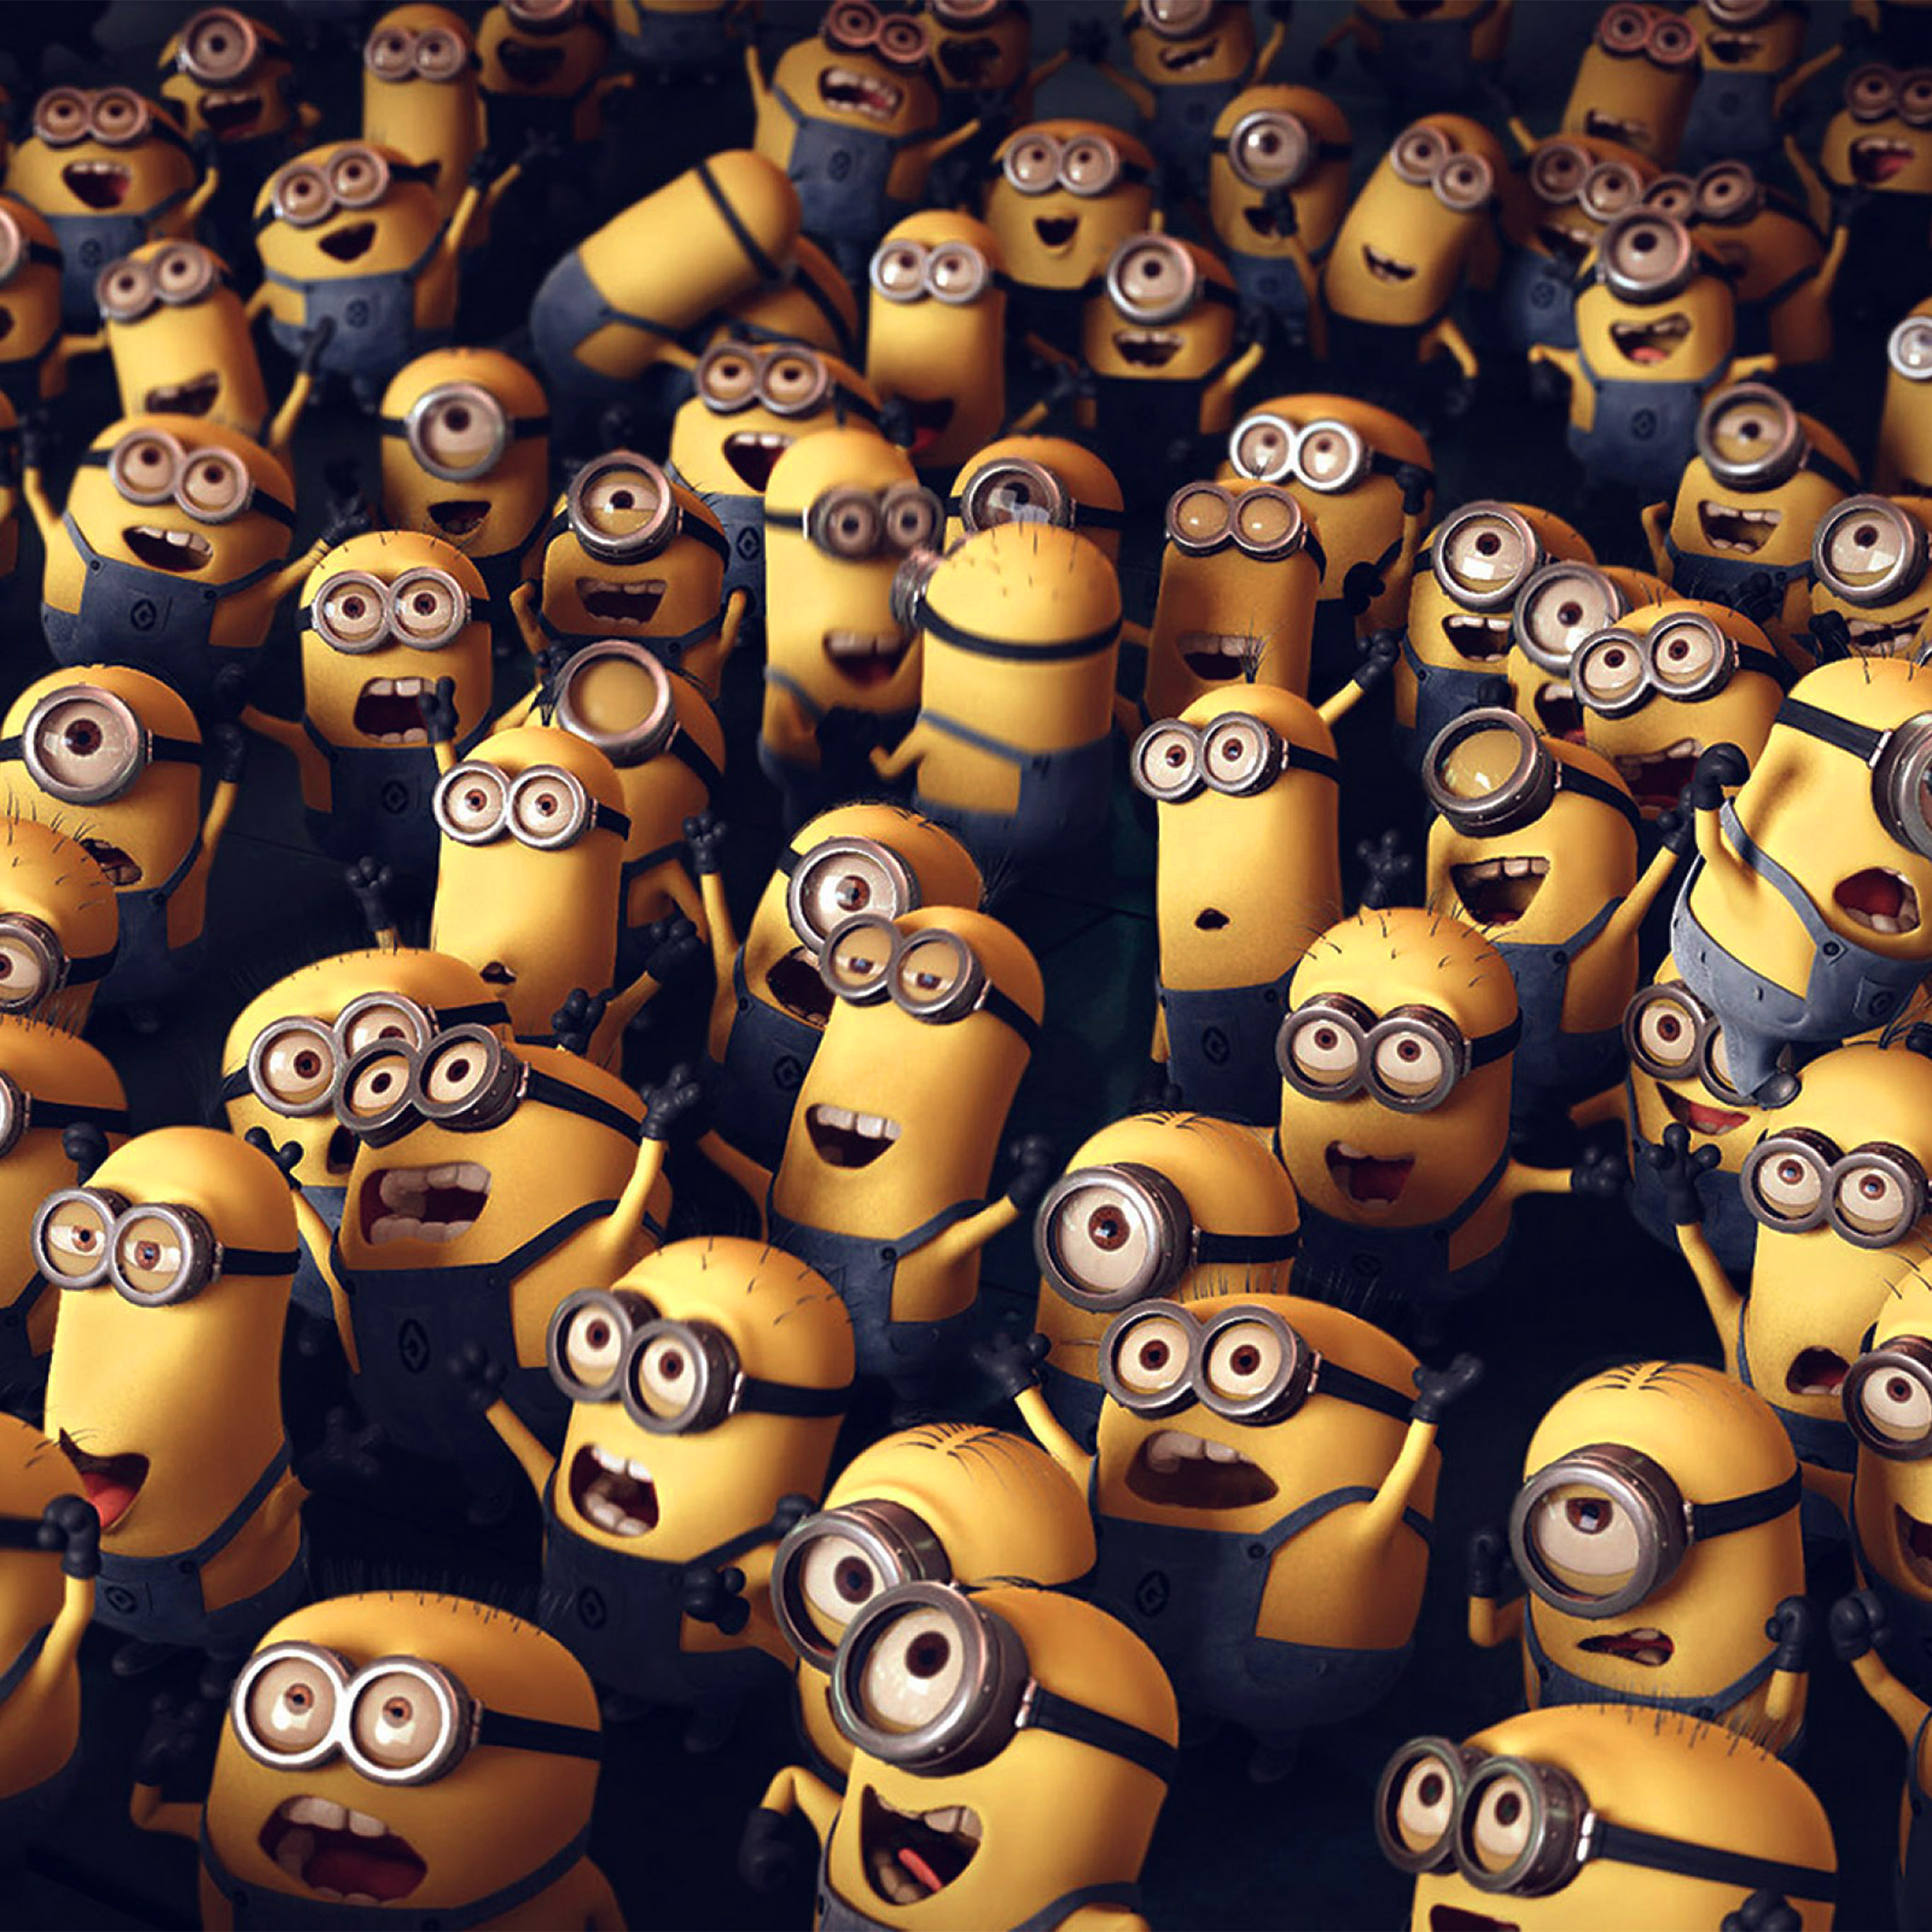 ar84-minions-despicable-me-cute-yellow-art-illustration-wallpaper